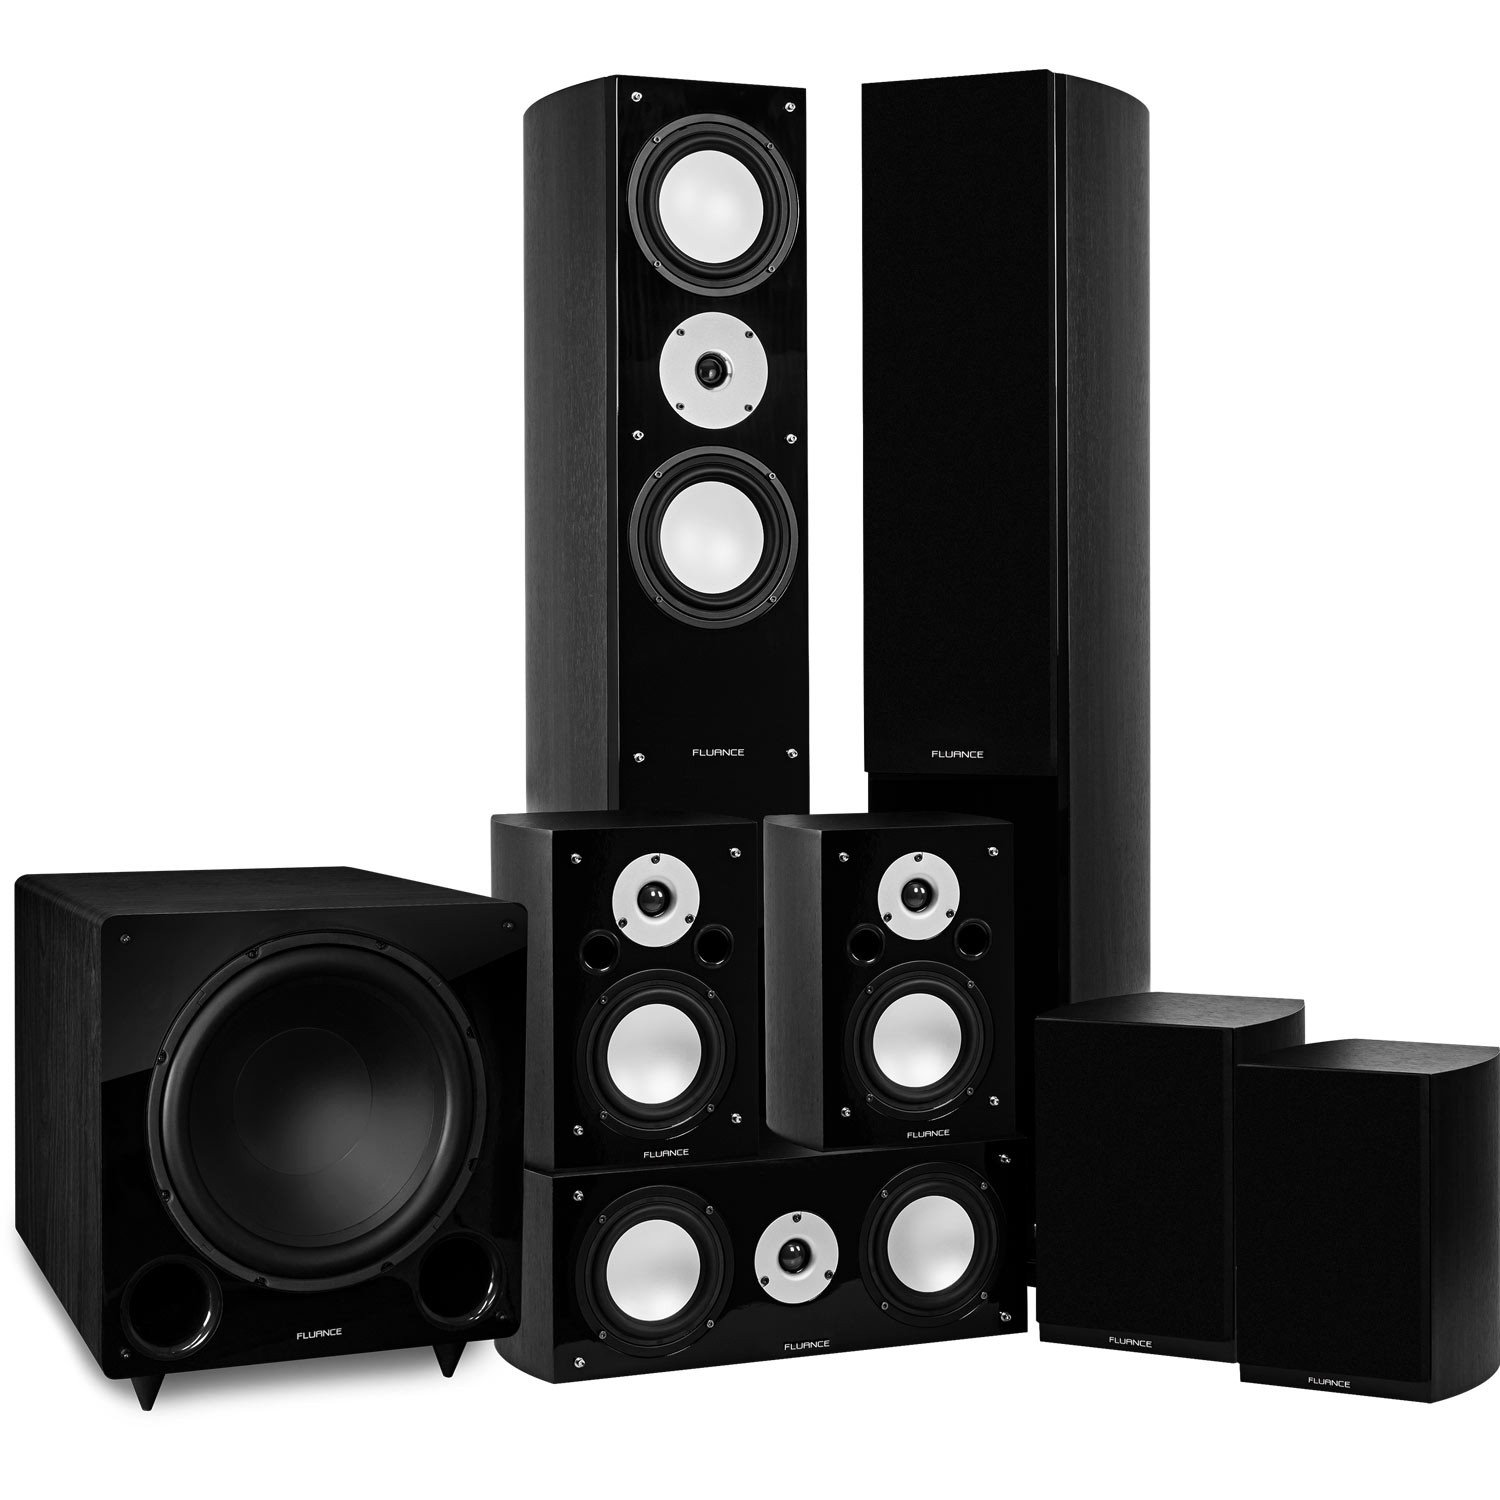 Reference Series Black Ash Surround Sound Home Theater 7.1 Channel Speaker System